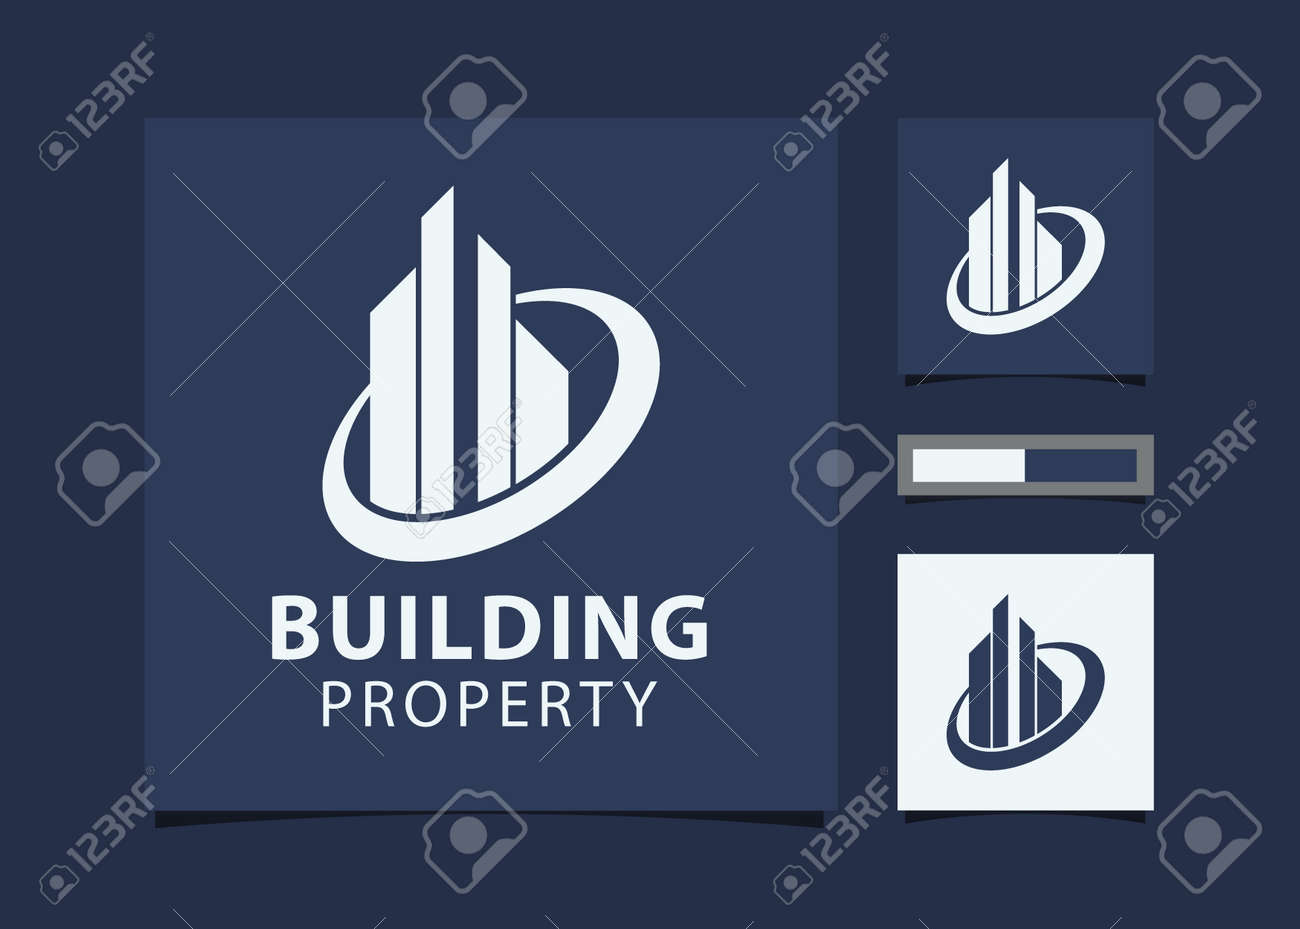 Abstract Building design for real estate, property business with mockup id card. - 169903954